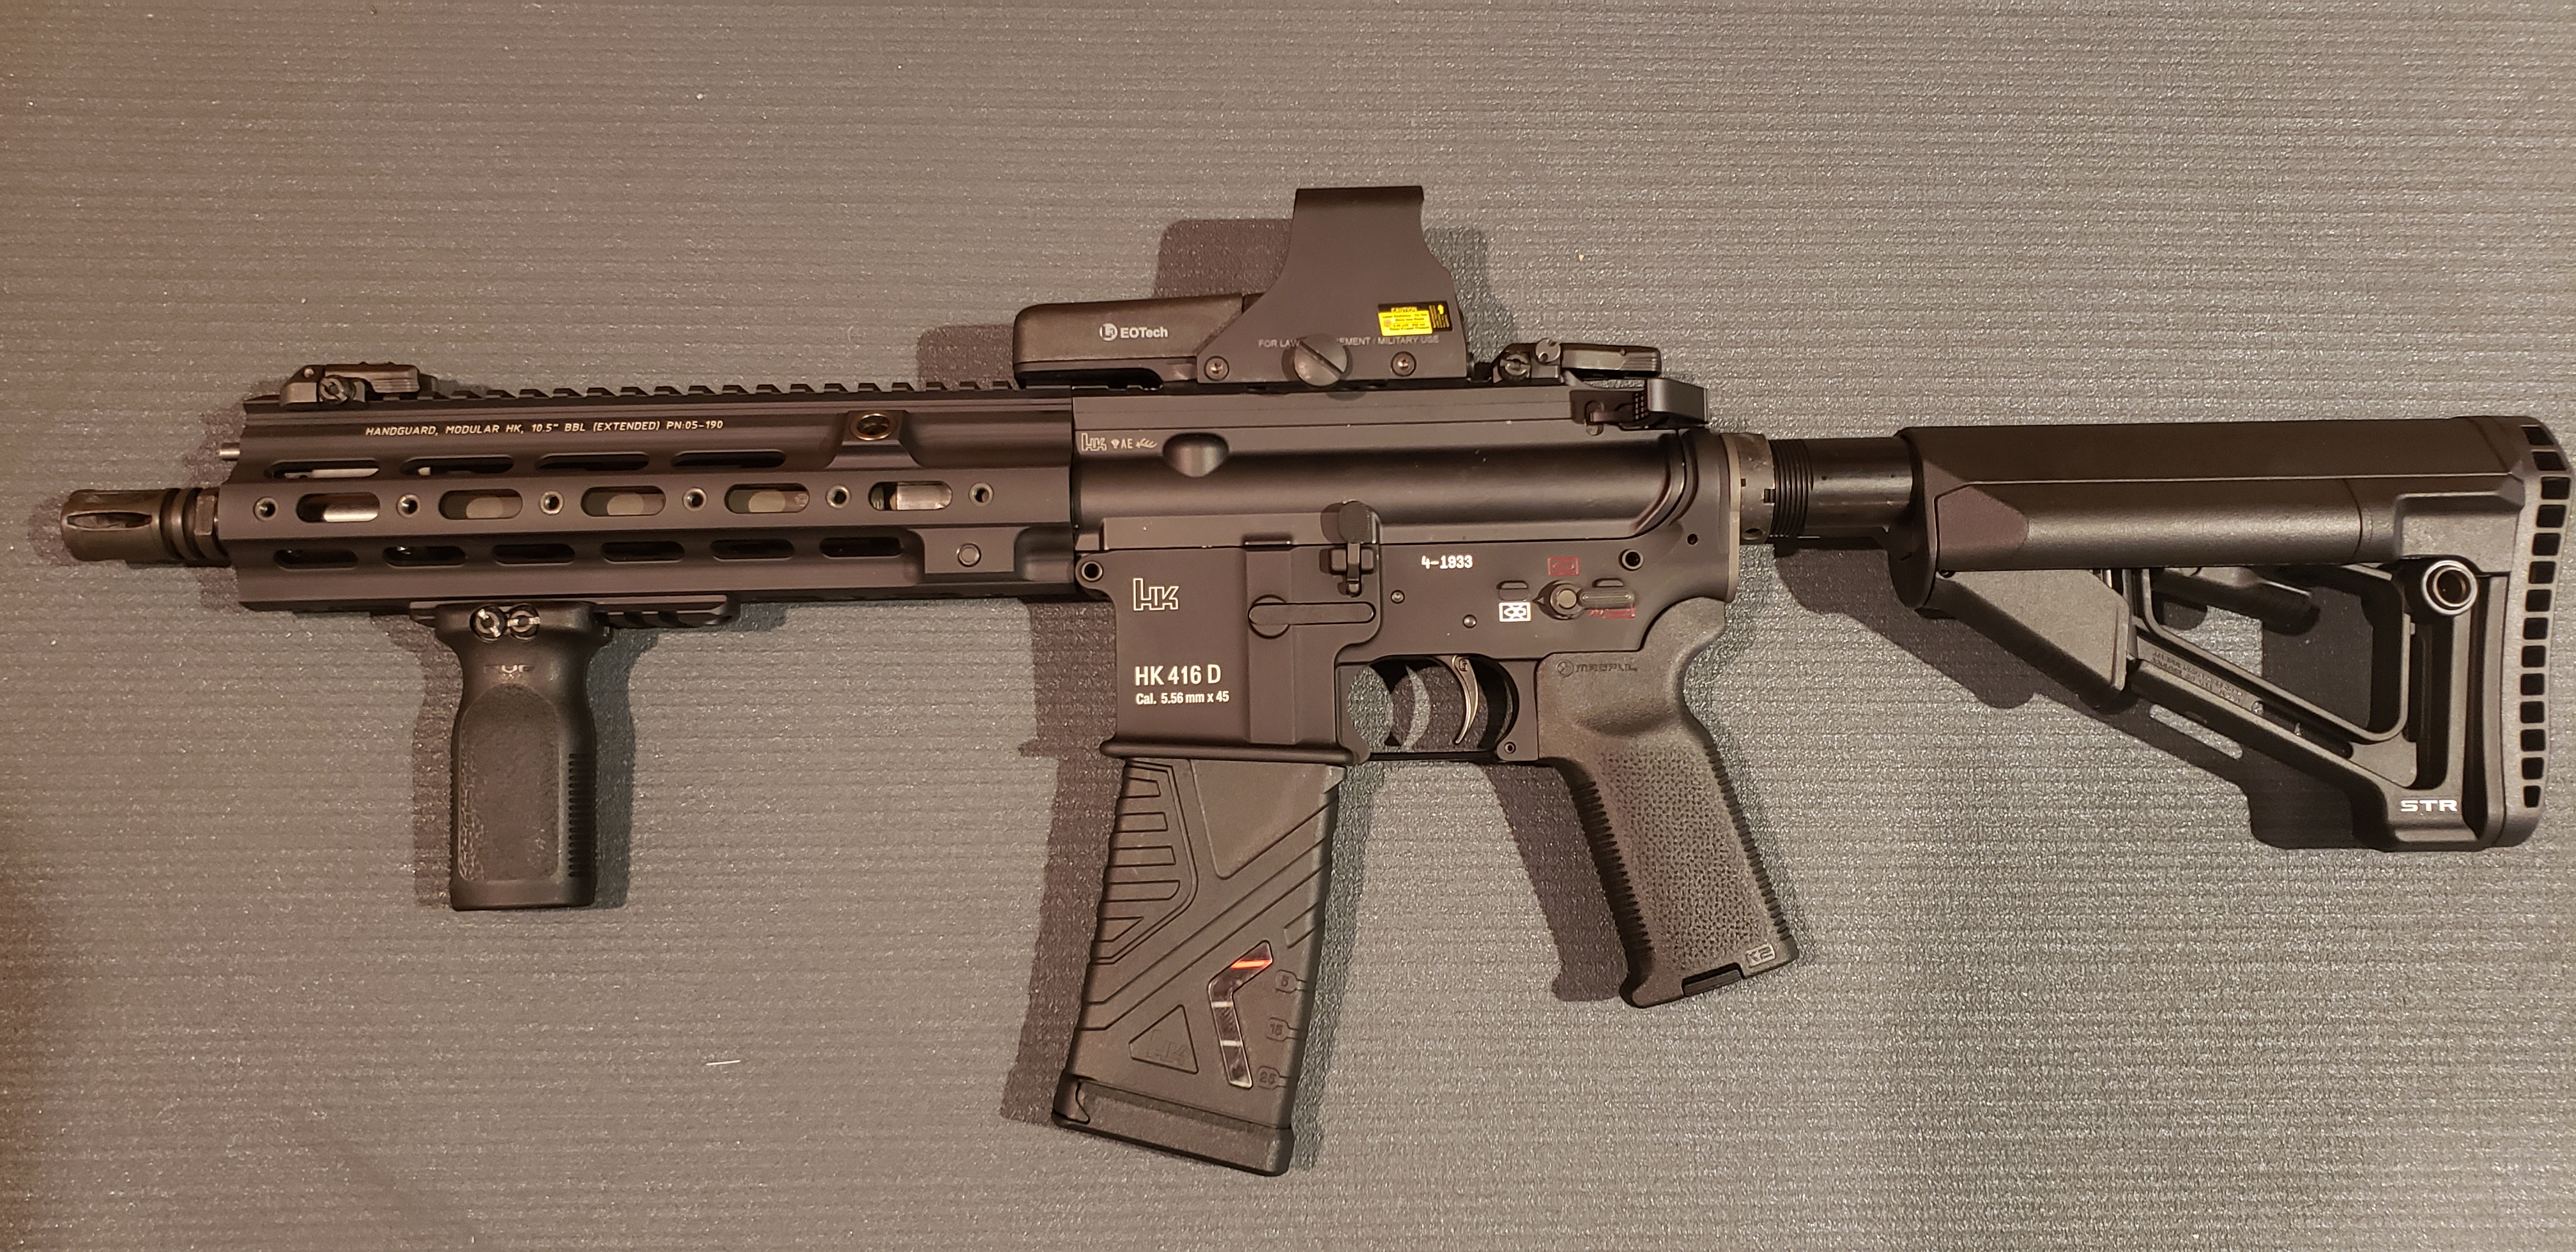 The Start Of My HK Collection-zdnx68z.jpg